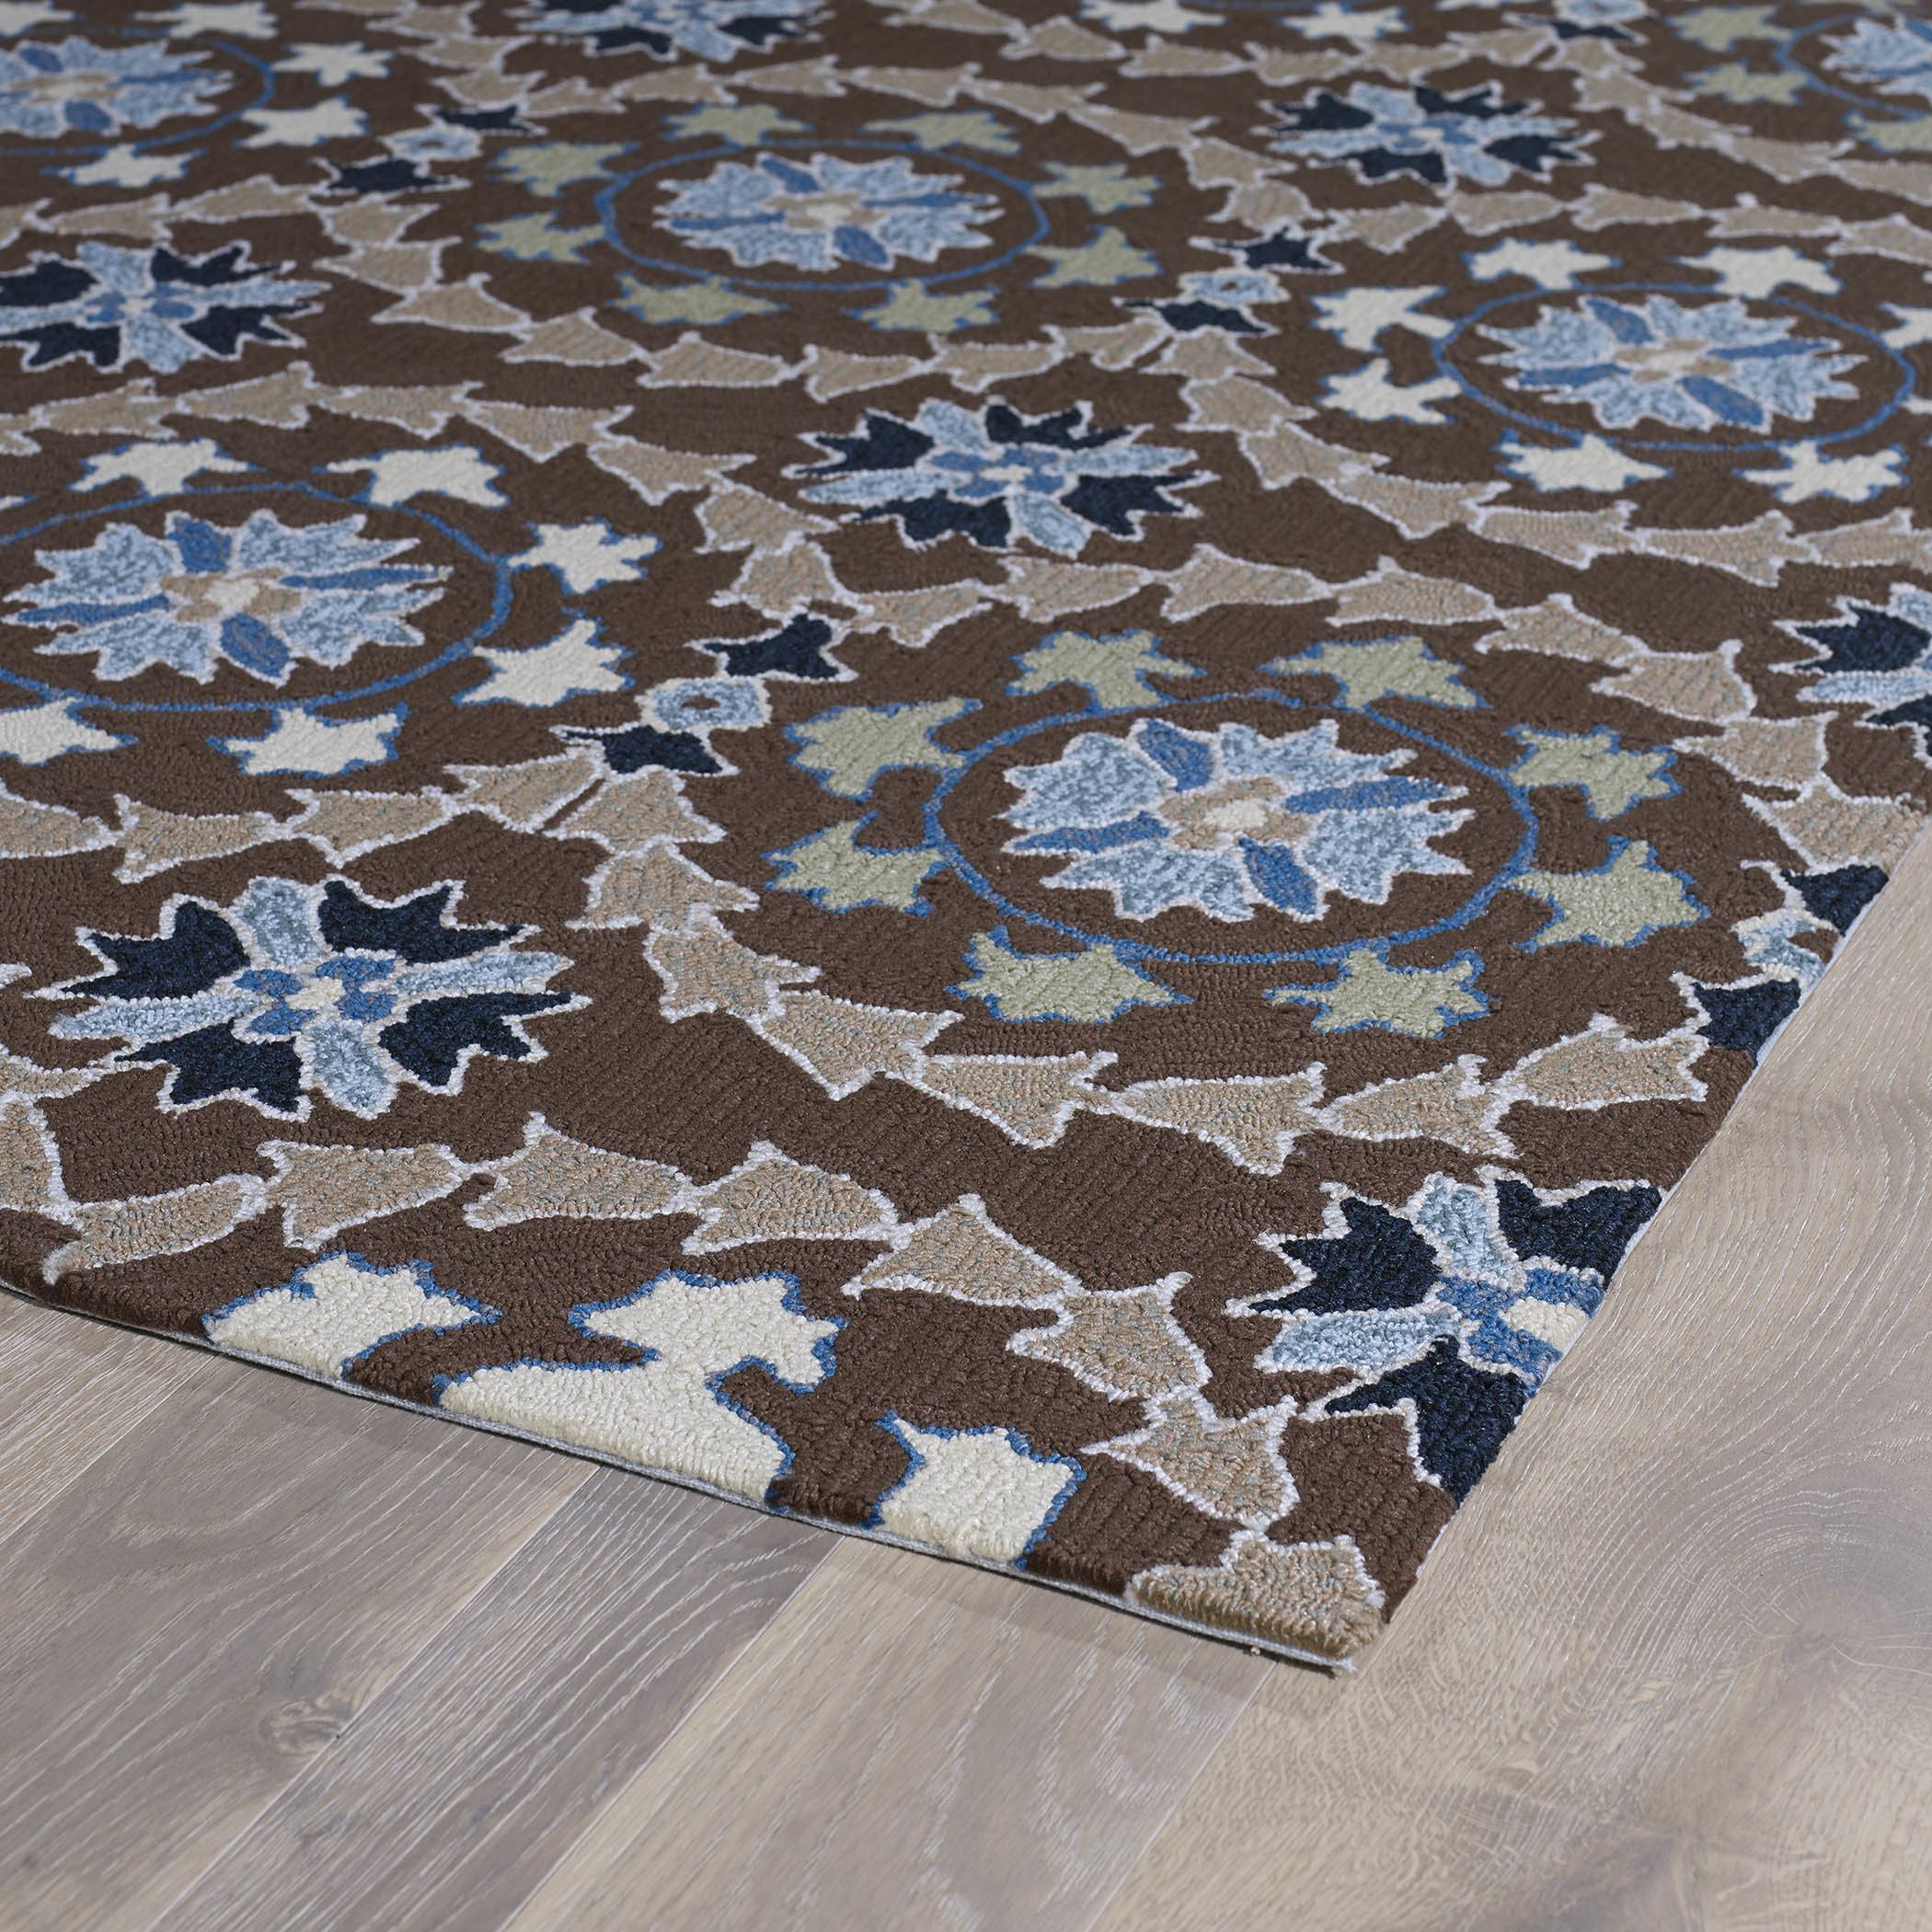 Best ideas about Outdoor Area Rugs . Save or Pin Kaleen Home and Porch Hand woven Blue Brown Indoor Outdoor Now.